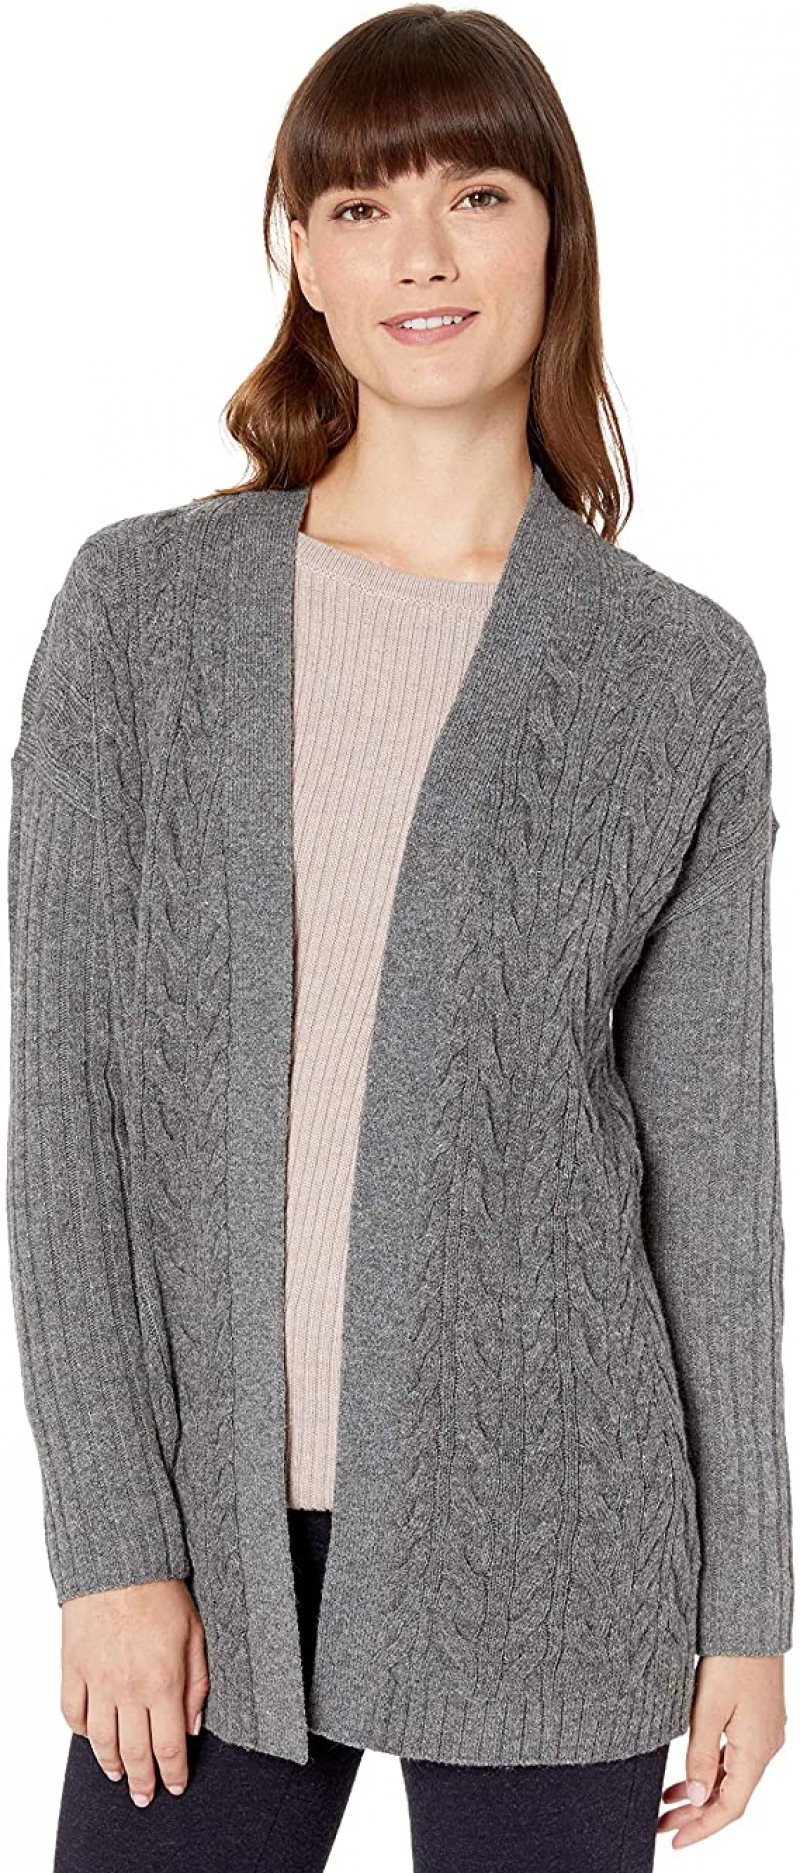 ihocon: [Amazon自家品牌] Amazon Essentials Women's Relaxed Fit Long-Sleeve Cable Open-Front Sweater  女士前開式毛衣